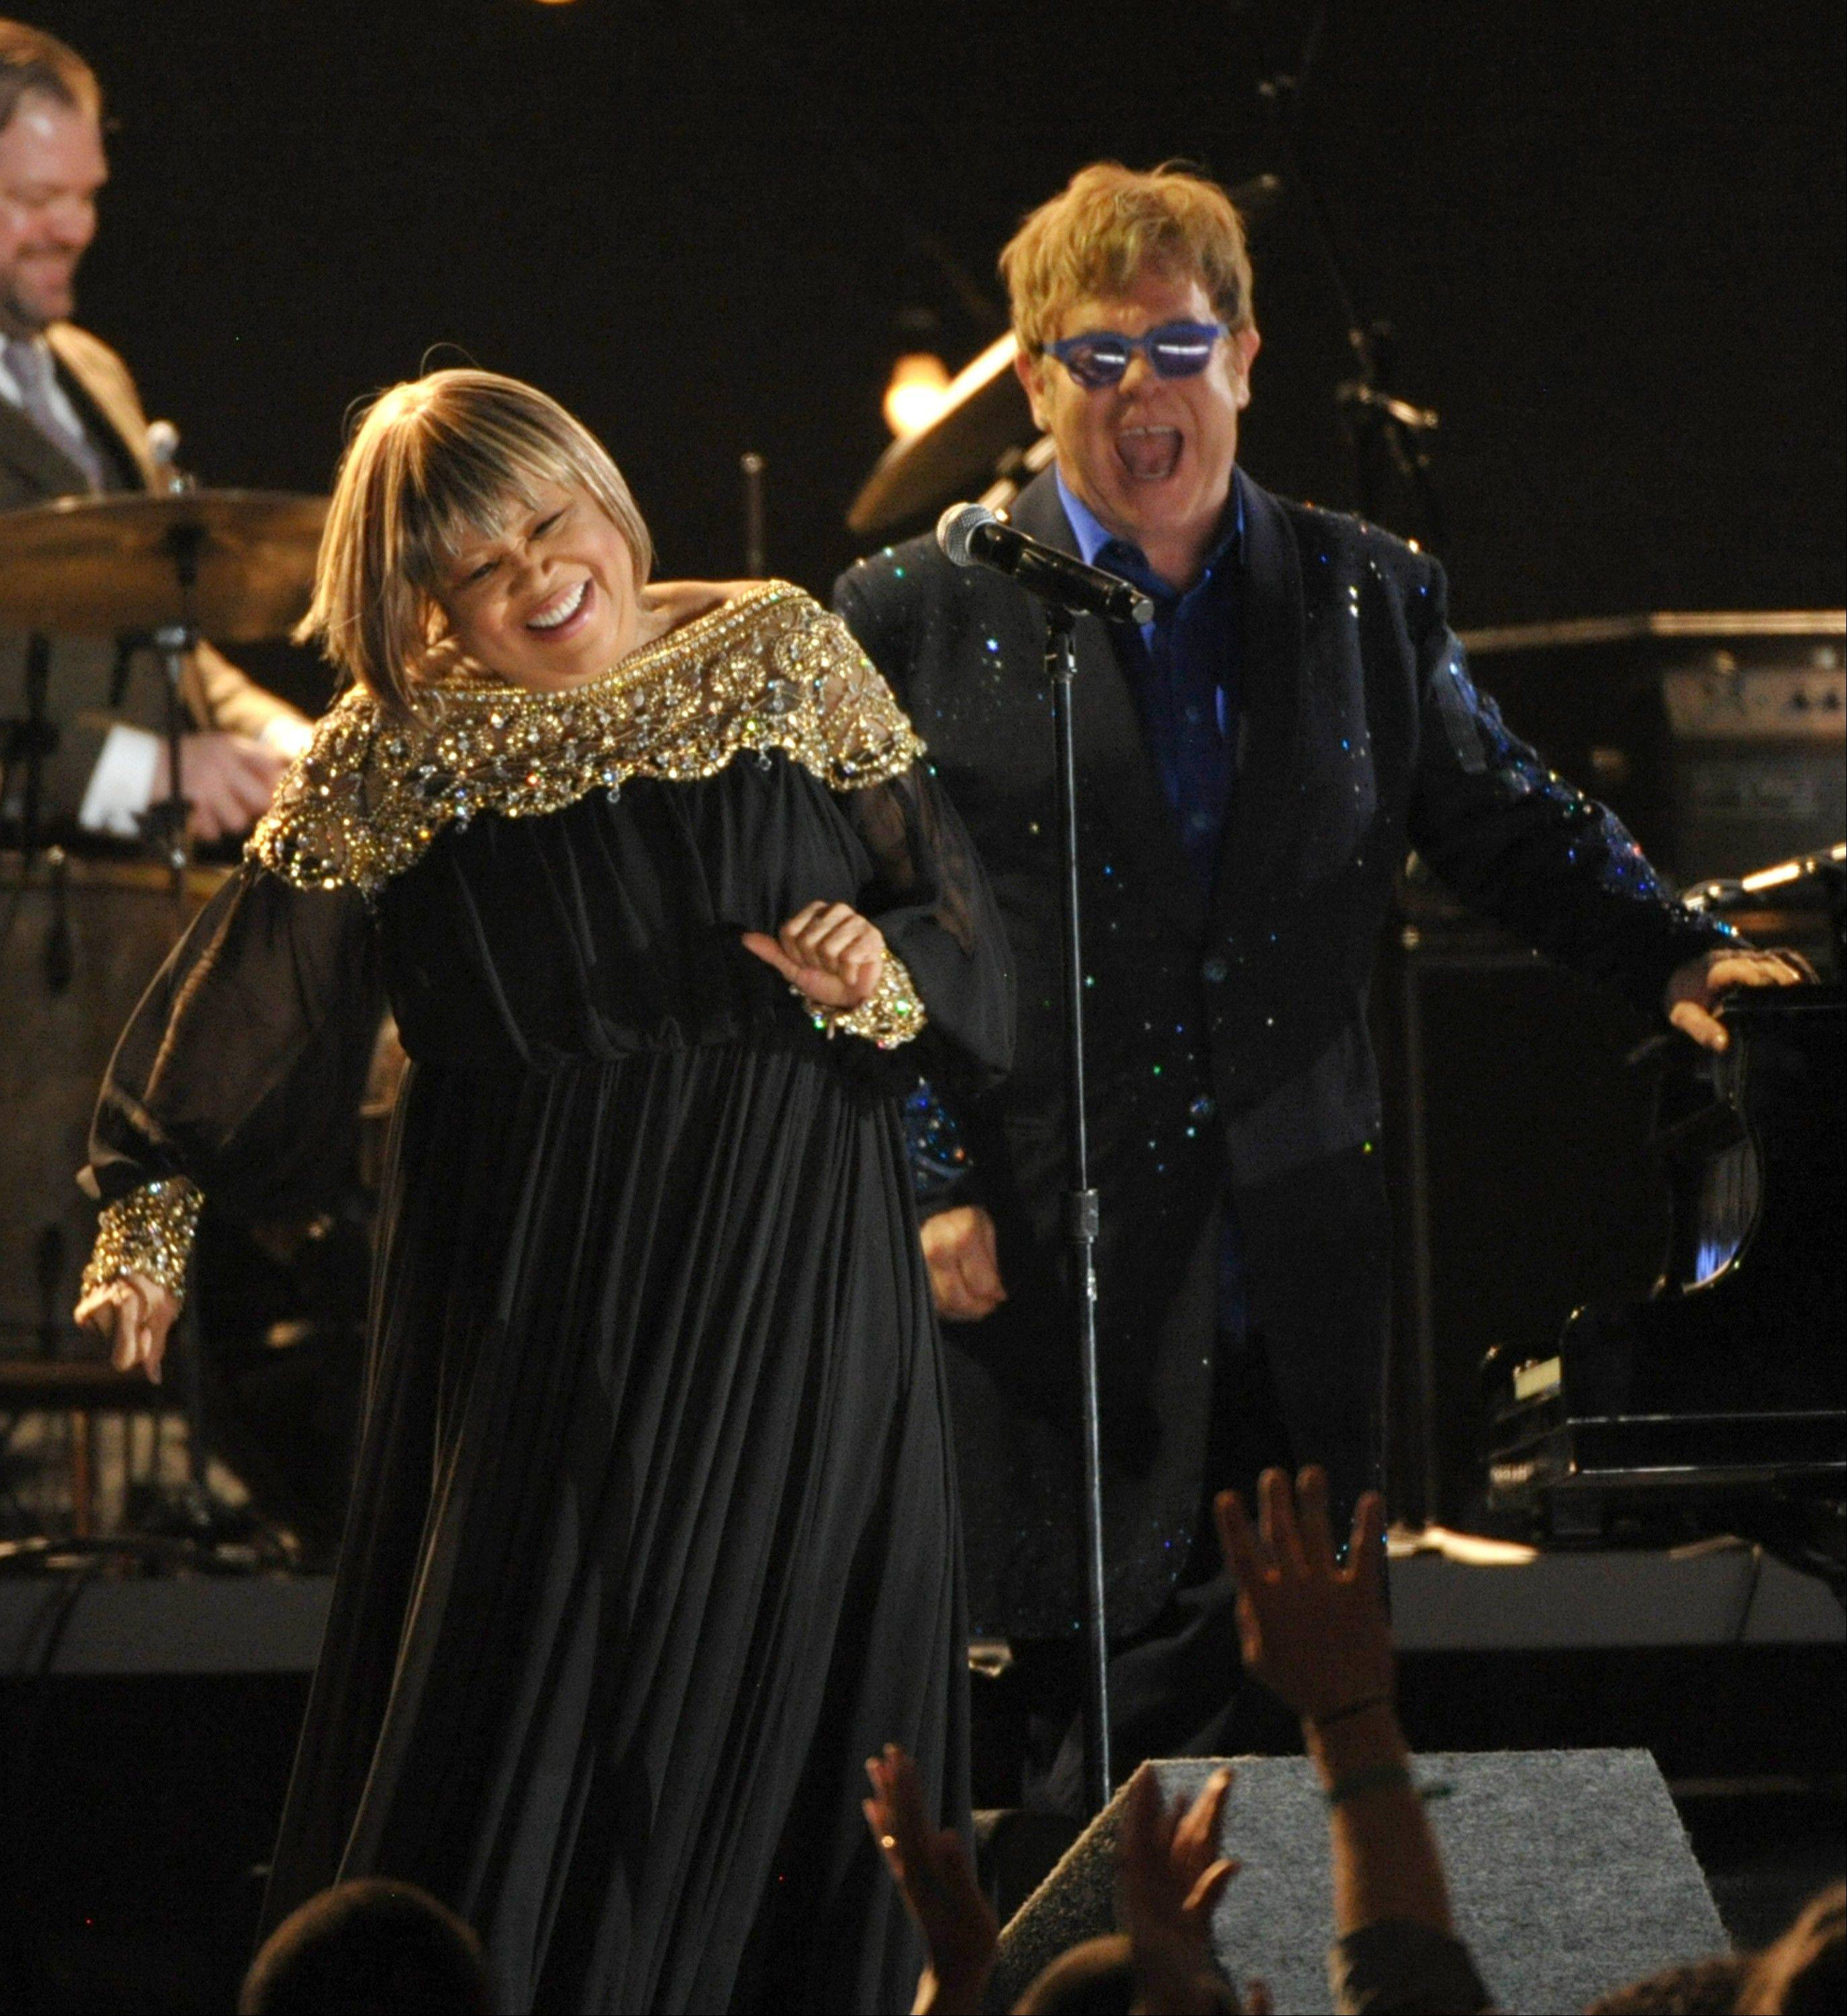 Mavis Staples, left, and Elton John perform a tribute to Levon Helm at the 55th annual Grammy Awards on Sunday, Feb. 10, 2013, in Los Angeles.